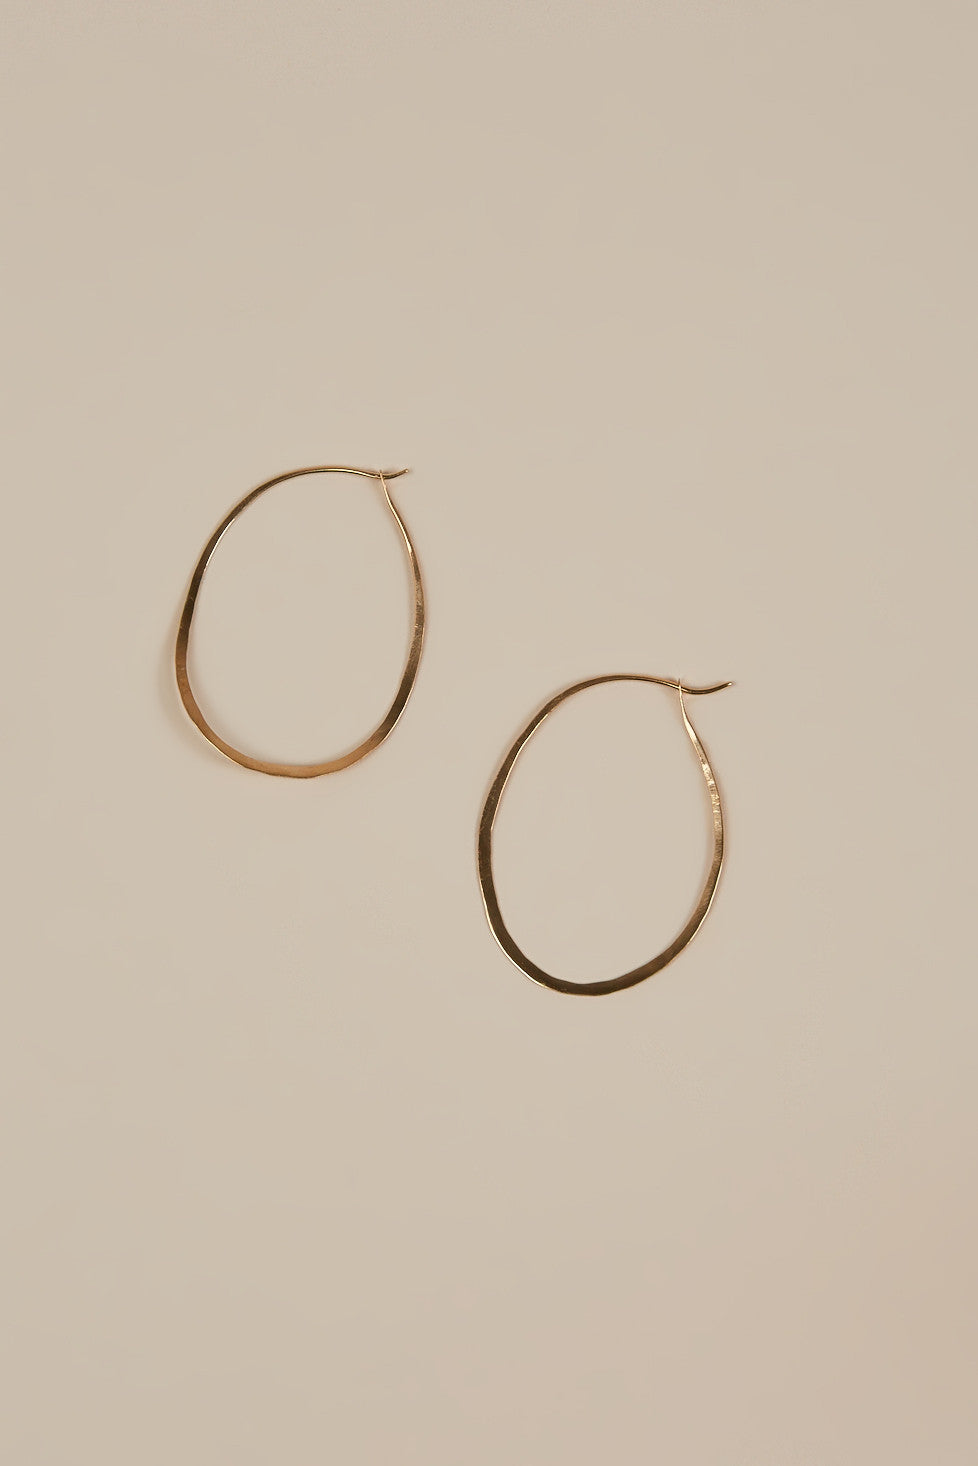 Oval Hoops, Gold by Blana Monros Gomez